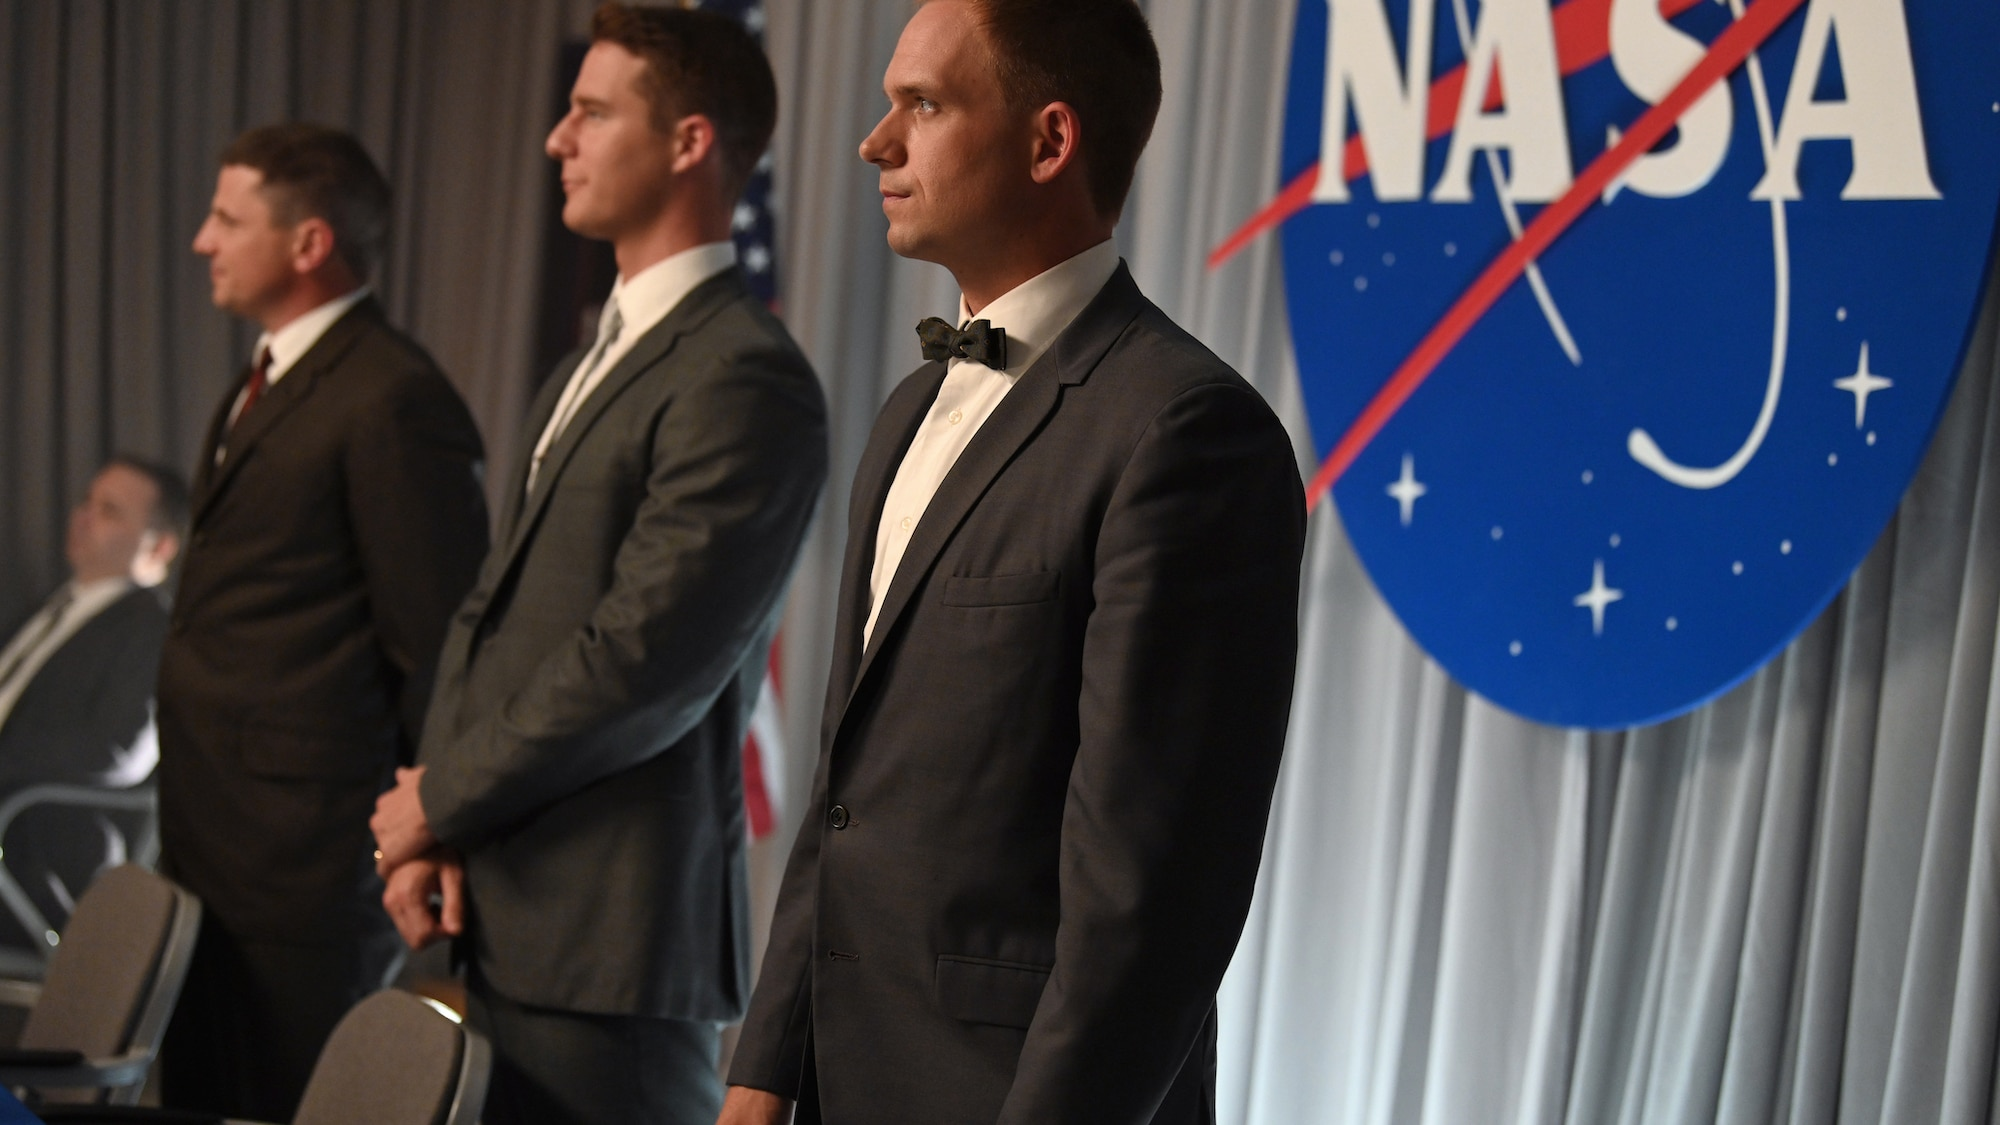 L to R: Michael Trotter as Gus Grissom, Jake McDorman as Alan Shepard and Patrick J. Adams as John Glenn during a press conference in National Geographic's THE RIGHT STUFF streaming on Disney+. (National Geographic/Gene Page)